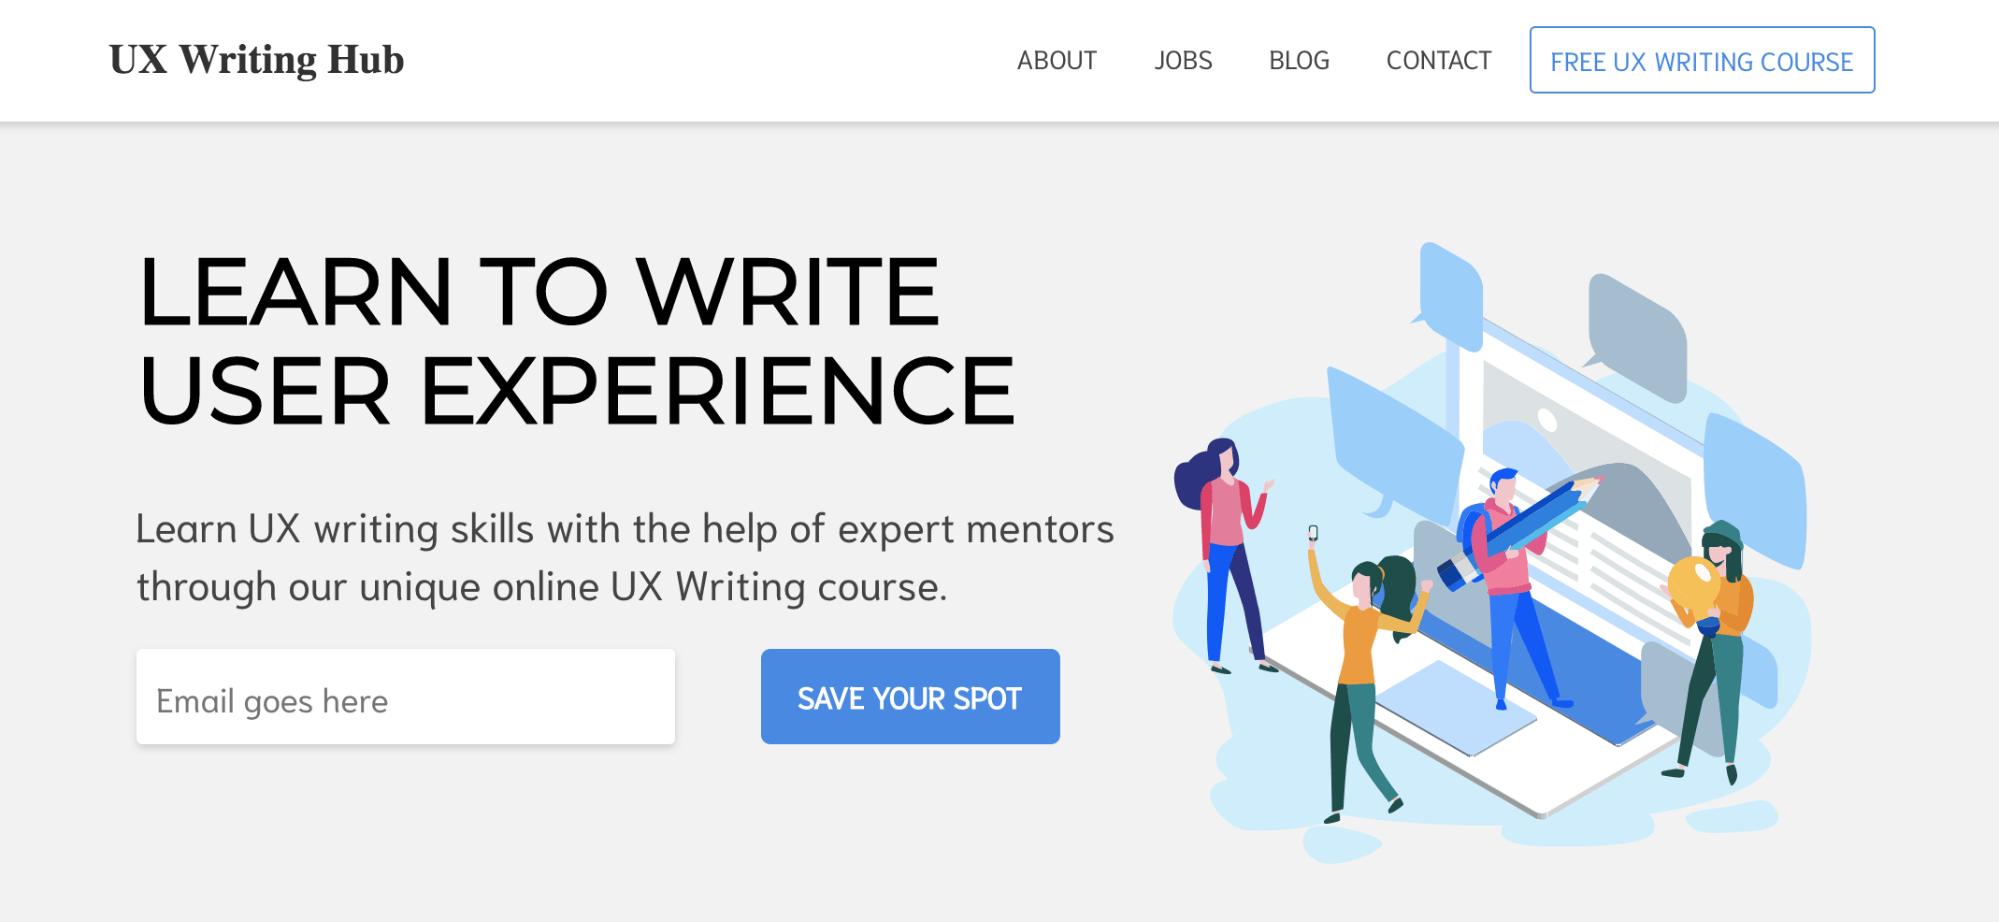 ux writing course